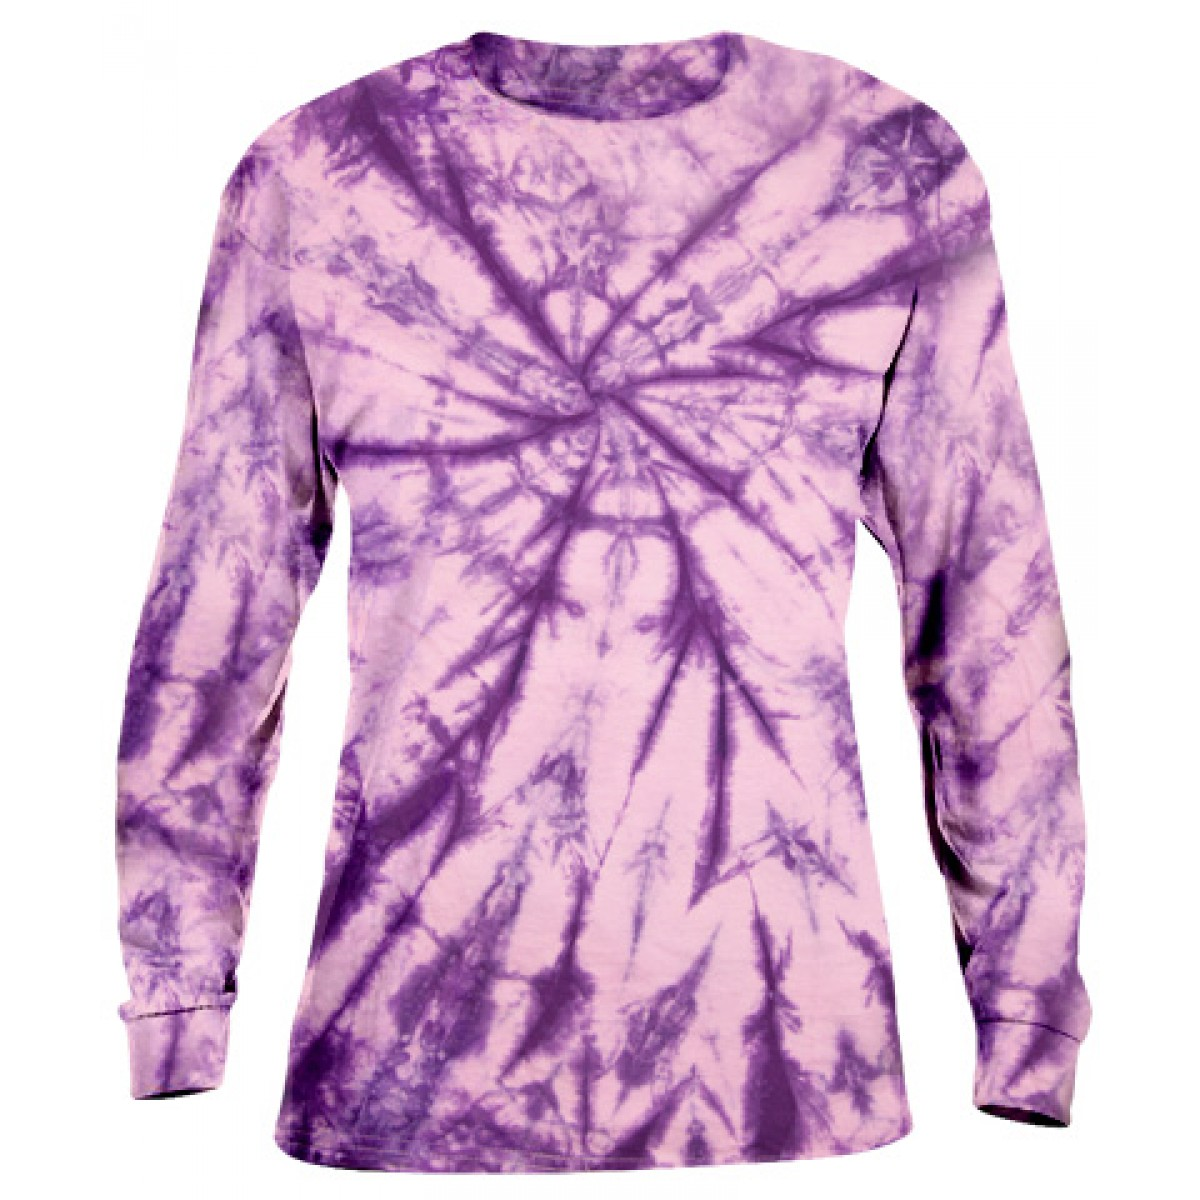 Tie-Dye Long Sleeve Shirt -Purple-YS